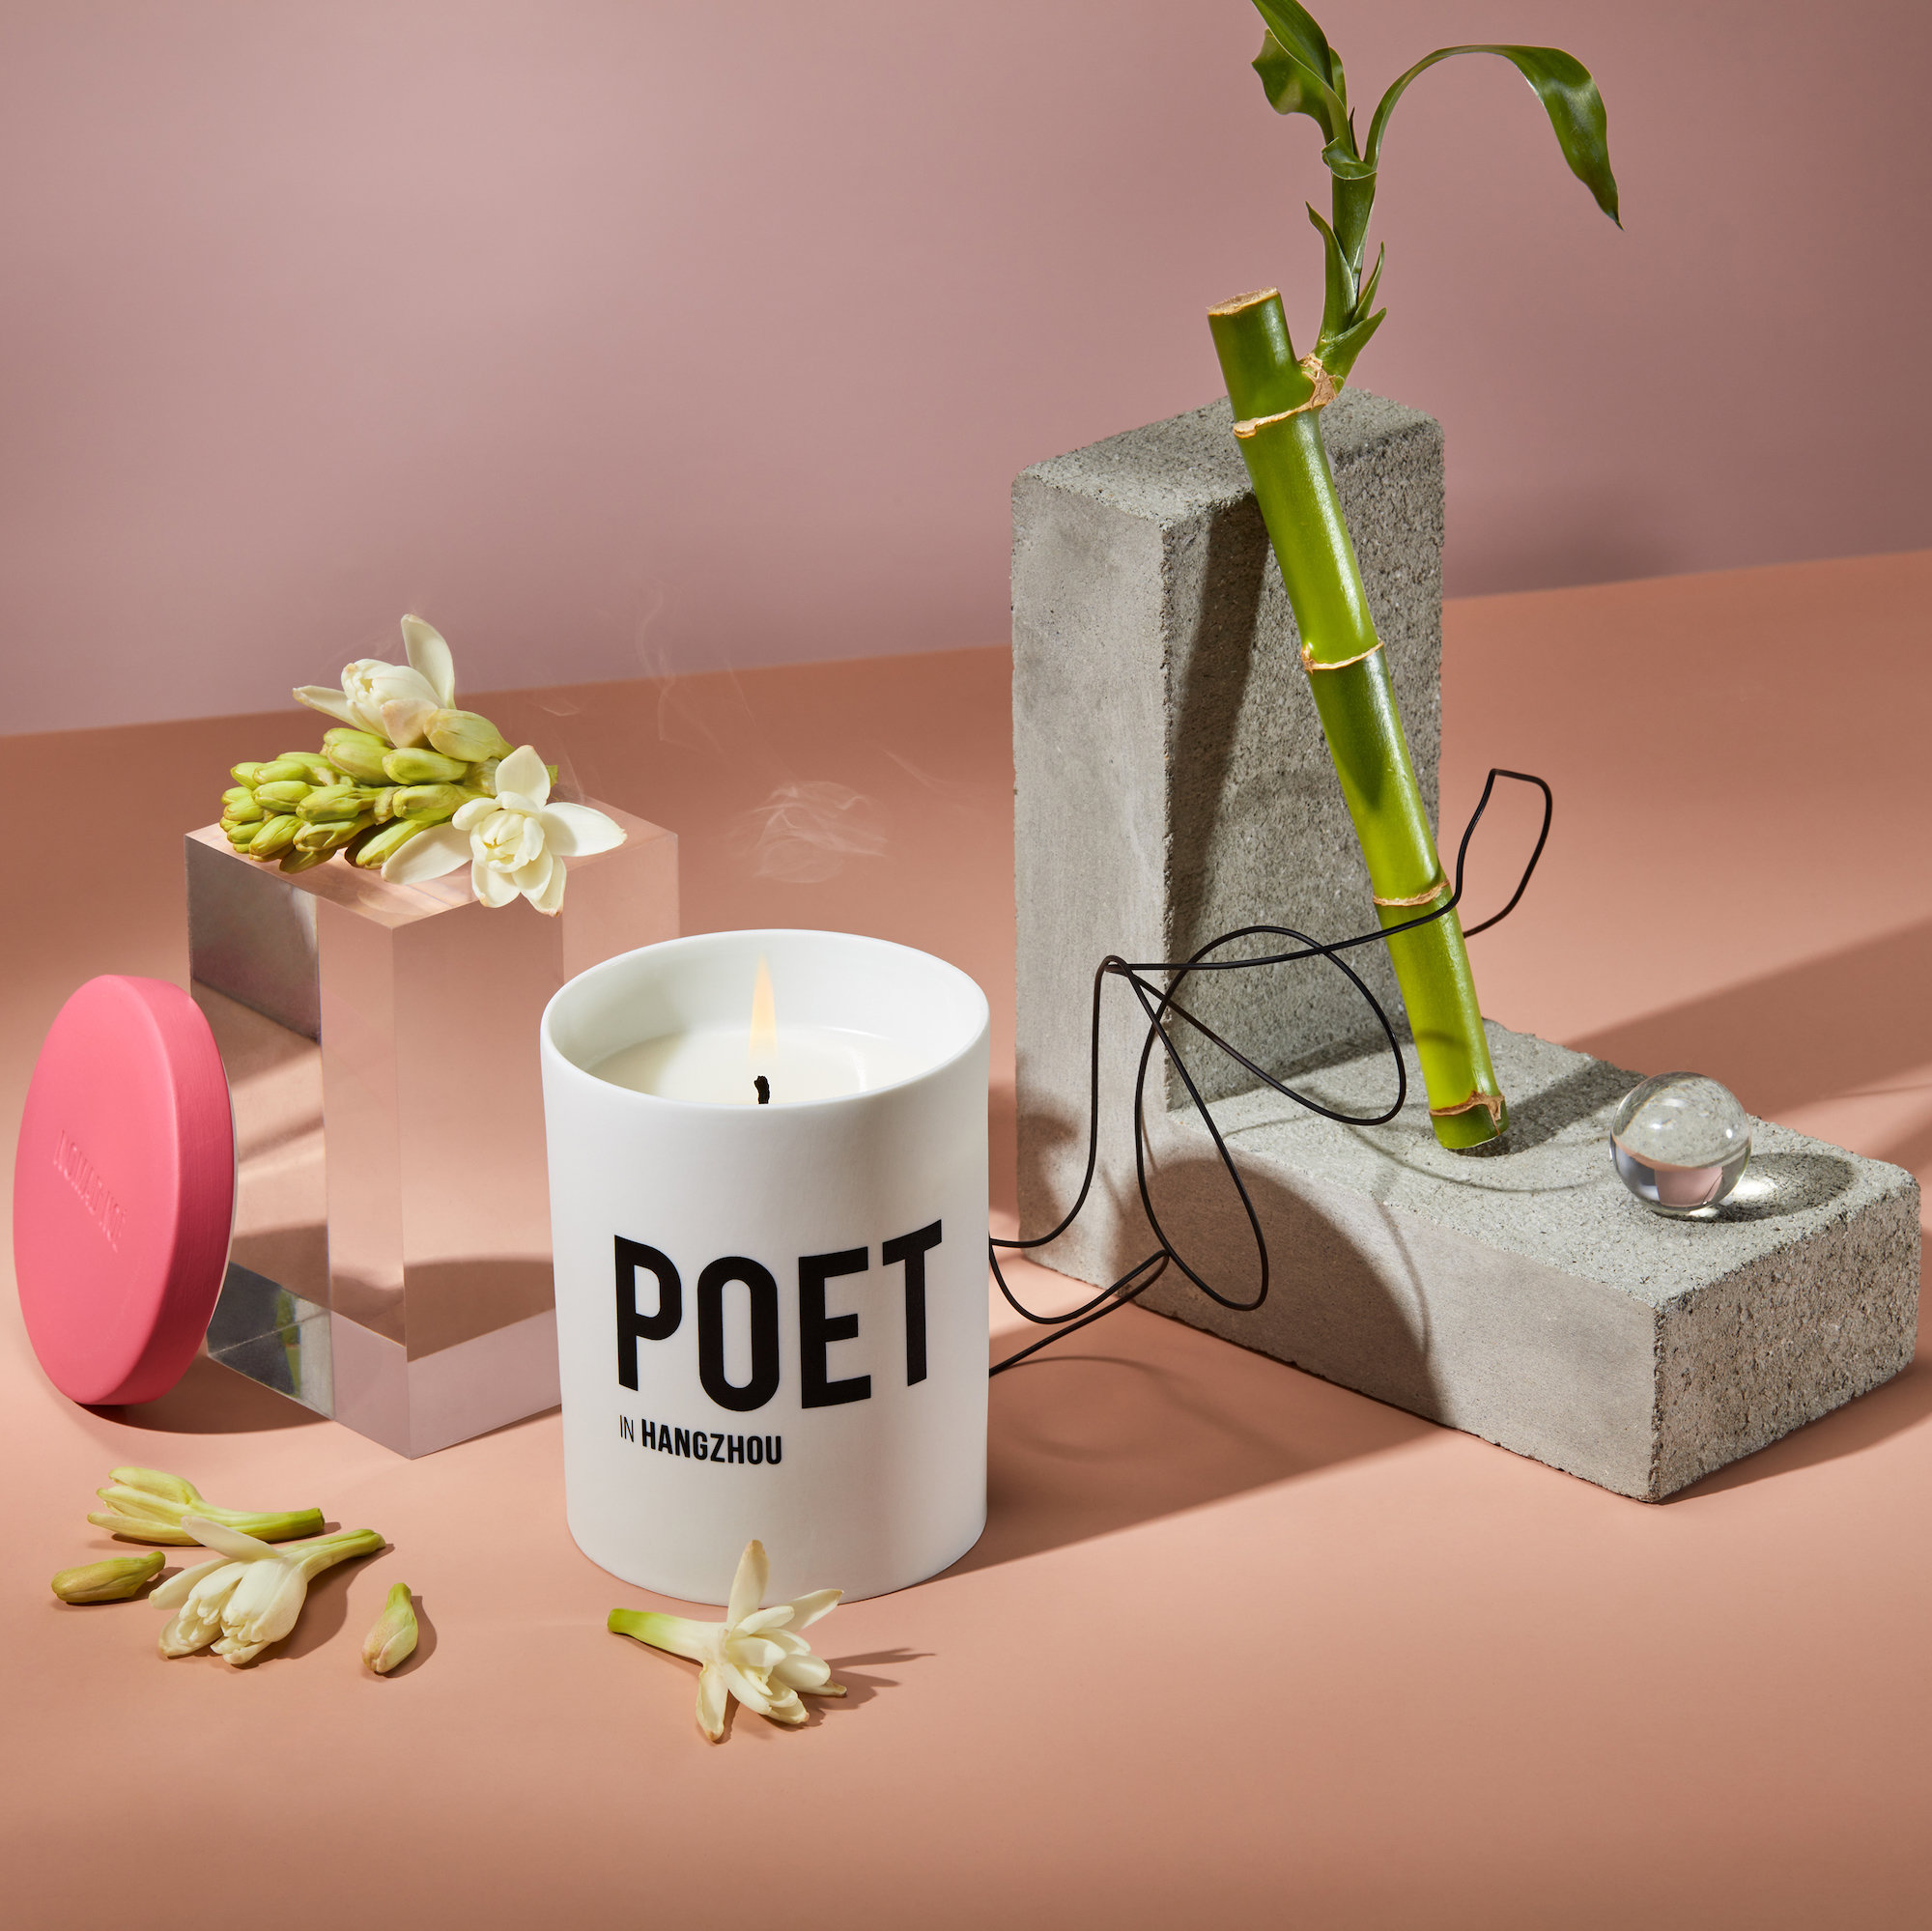 Alternate product image for Poet In Hangzhou - Bamboo & Tuberose Candle shown with the description.